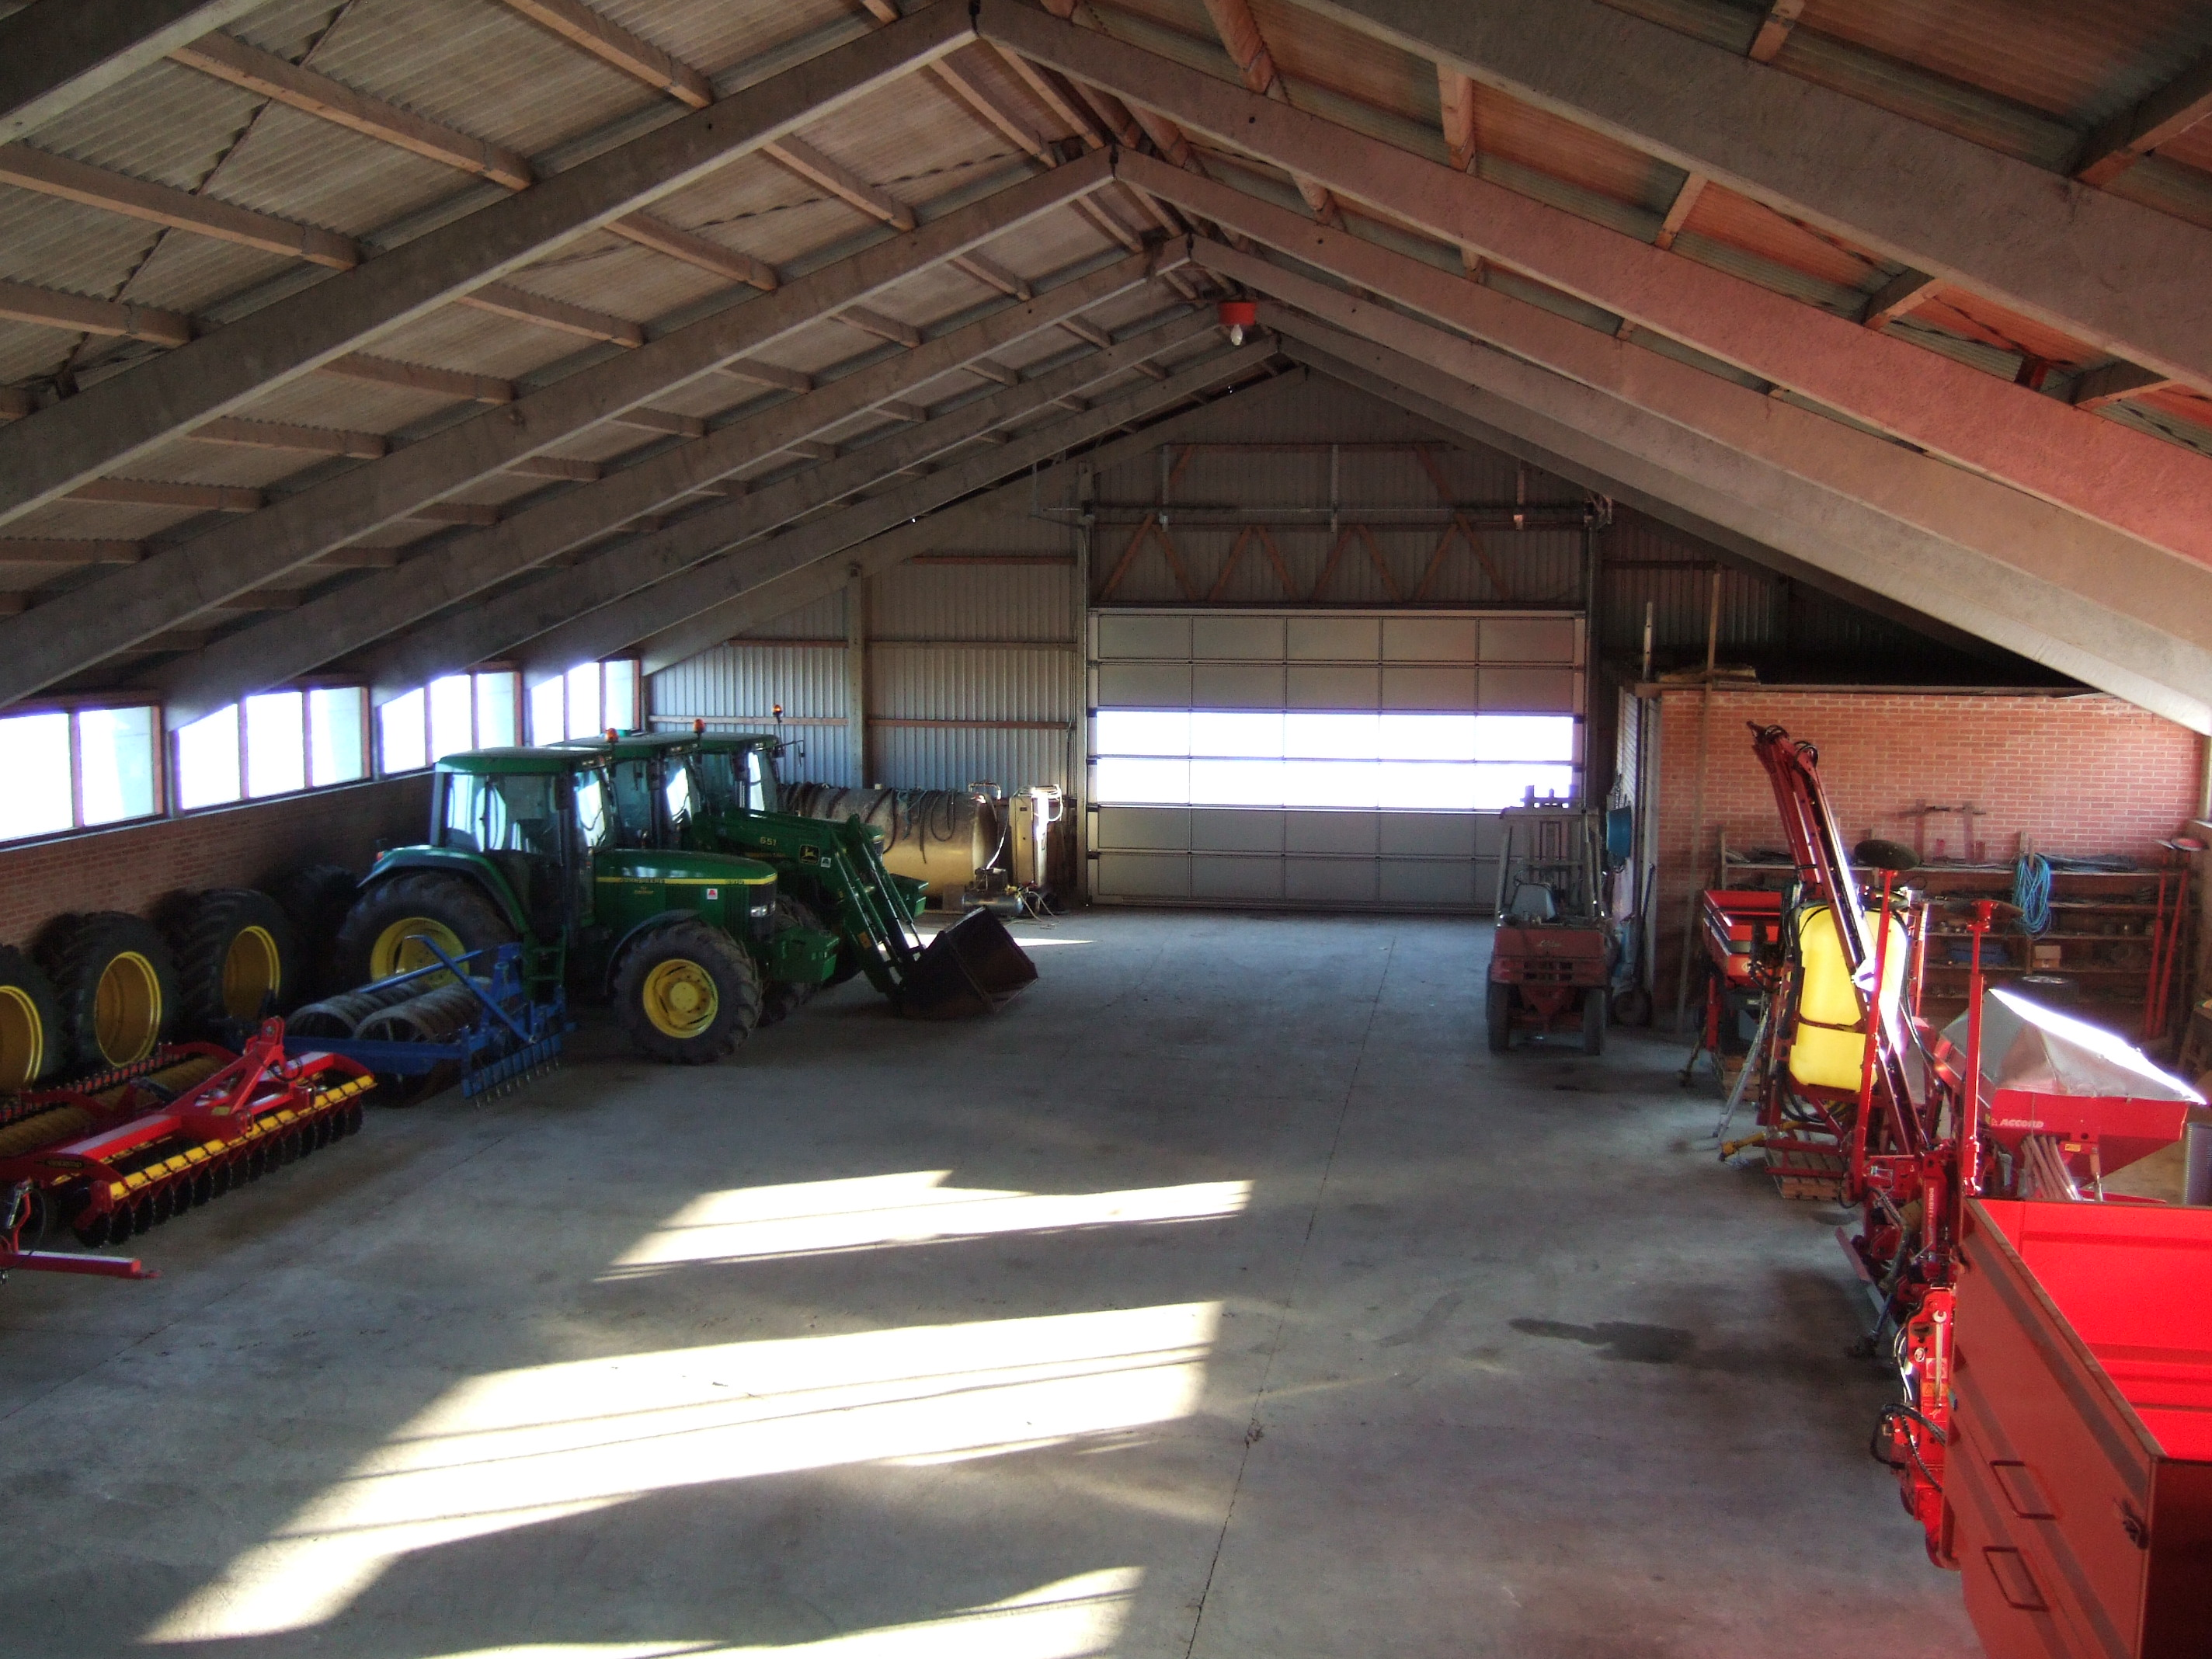 tabus hall shed barn tractor storage